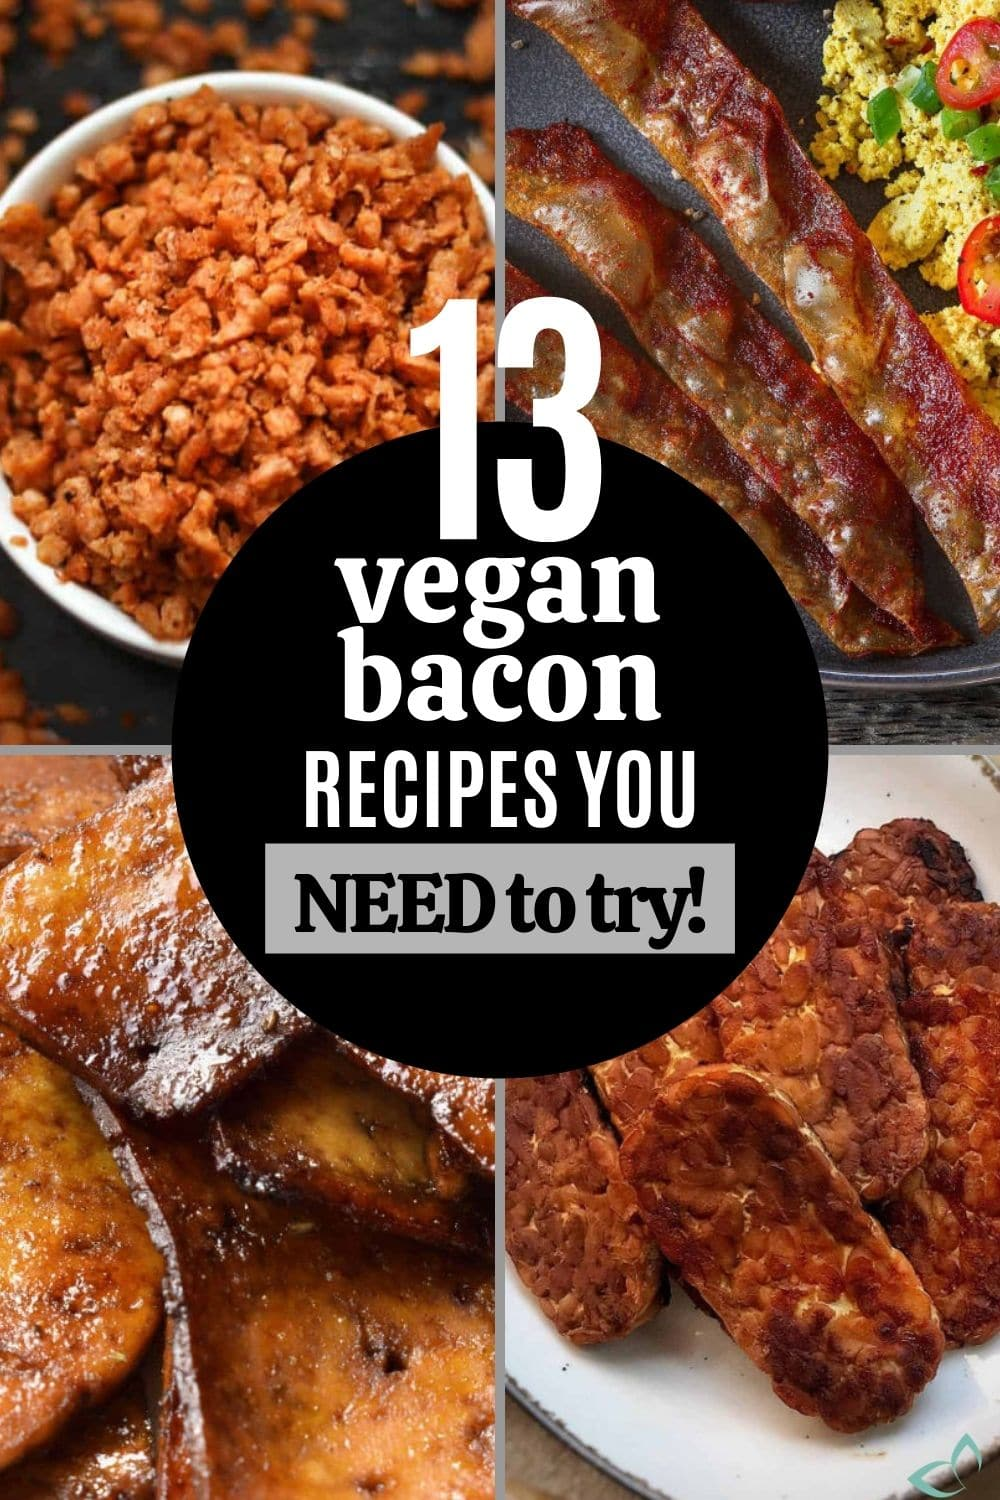 13 Vegan Bacon Recipes You NEED to Try!